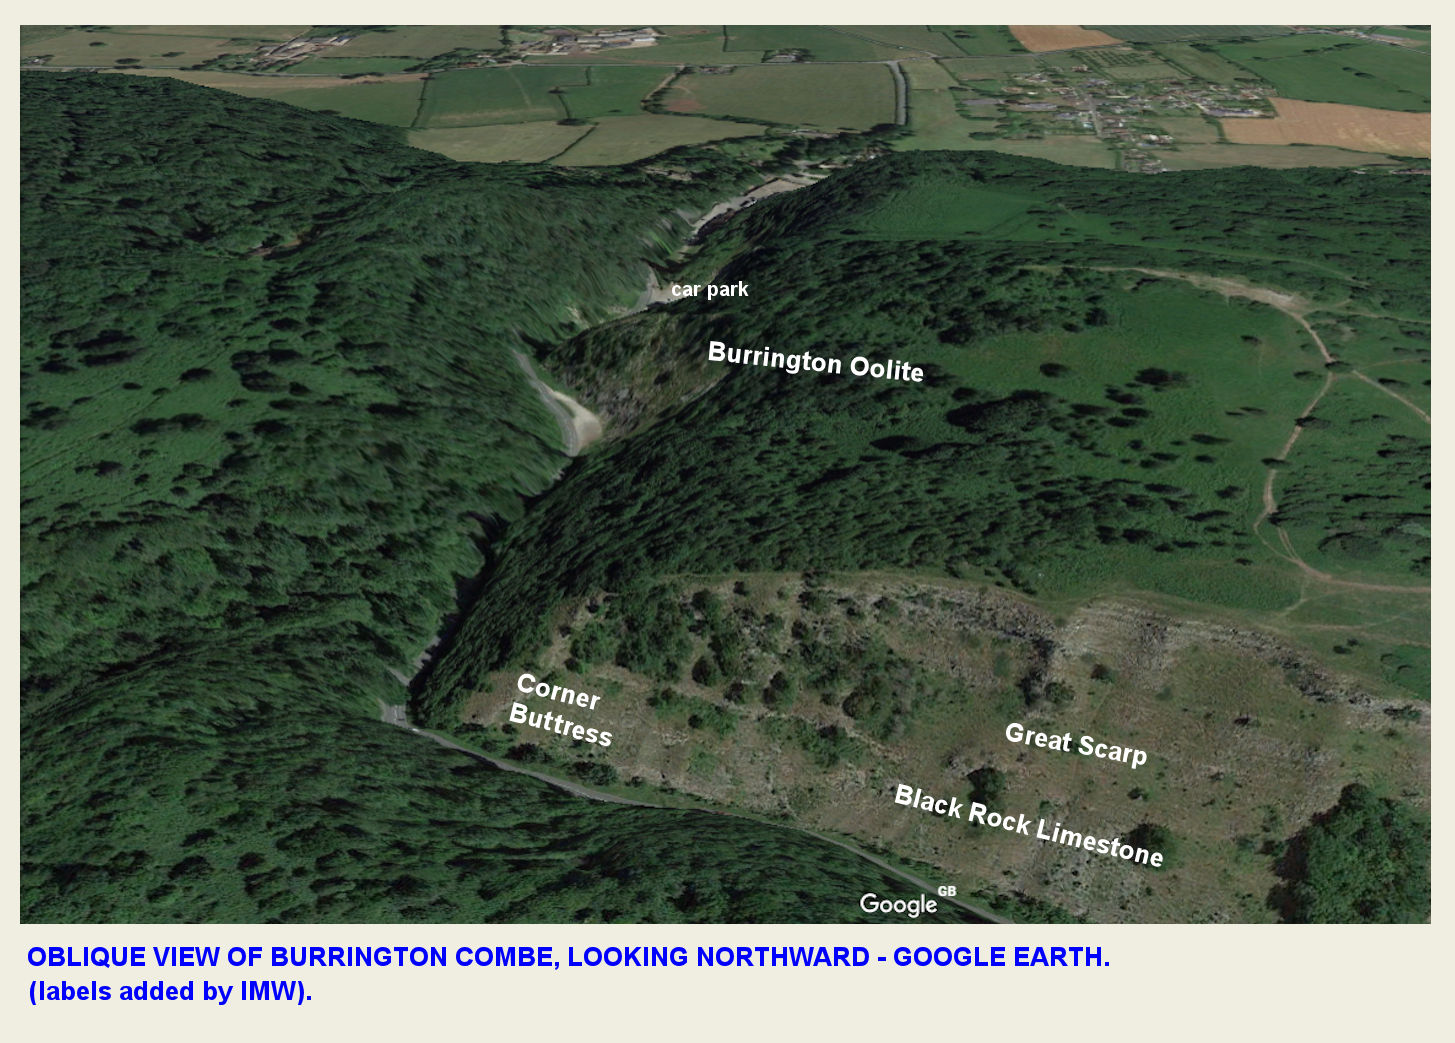 An oblique, northward, aerial view of Burrington Combe, based on GoogleEarth